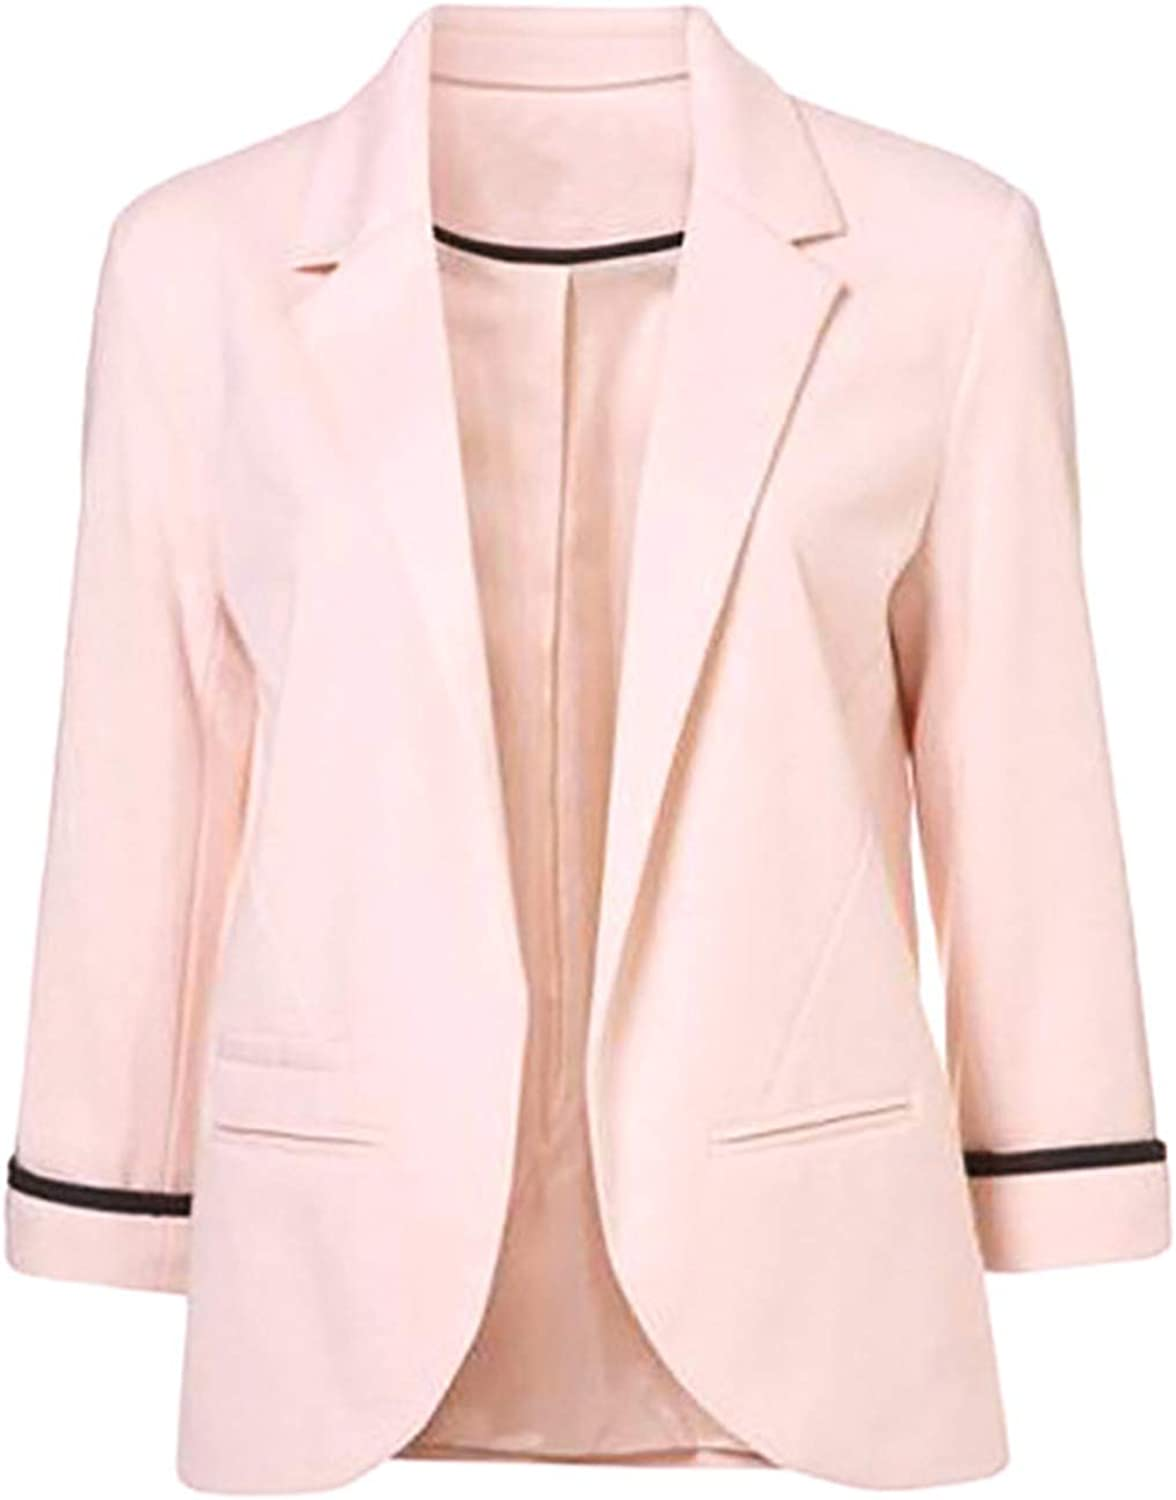 Kongsta Autumn Slim Fit Women Candycolor Three Quarter Sleeve Suit Solid Ponte Rolled Jackets Coat Ladies Blazer Coat Fashion Pink L